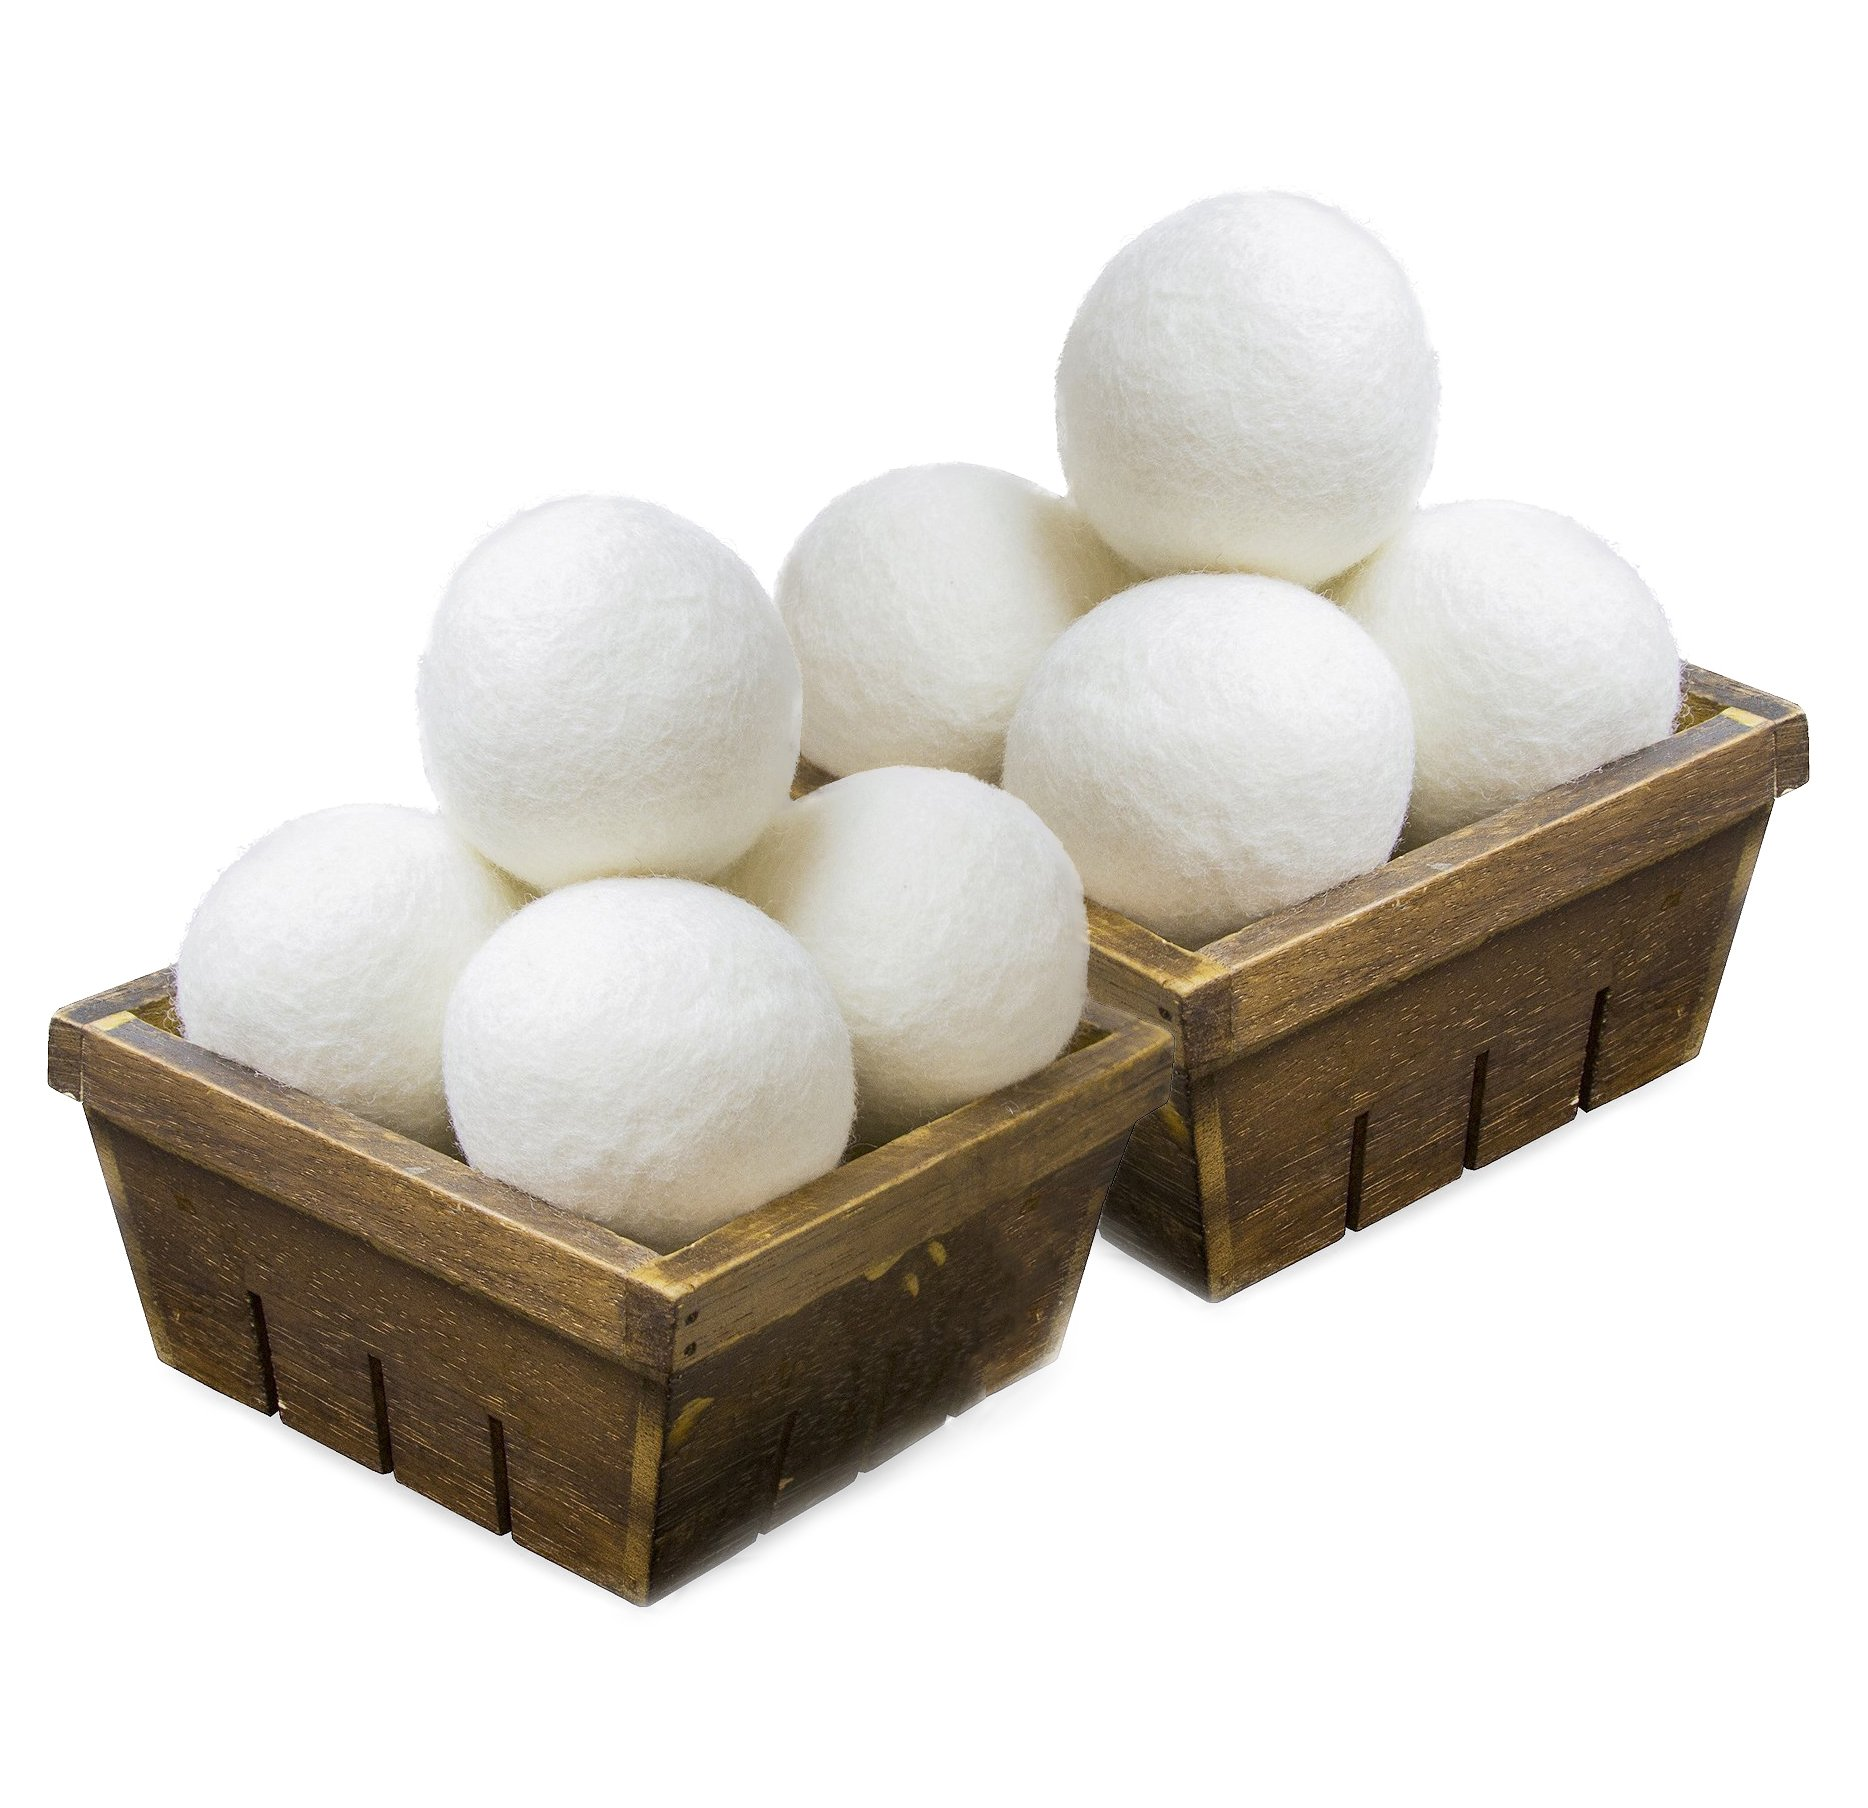 SnugPad Wool Dryer Balls Premium Natural Fabric Softener and 100% Organic, Chemical Free and Reduces Wrinkles. Saving Electricity and Drying Time XL Size 8 Pack White 8 Count